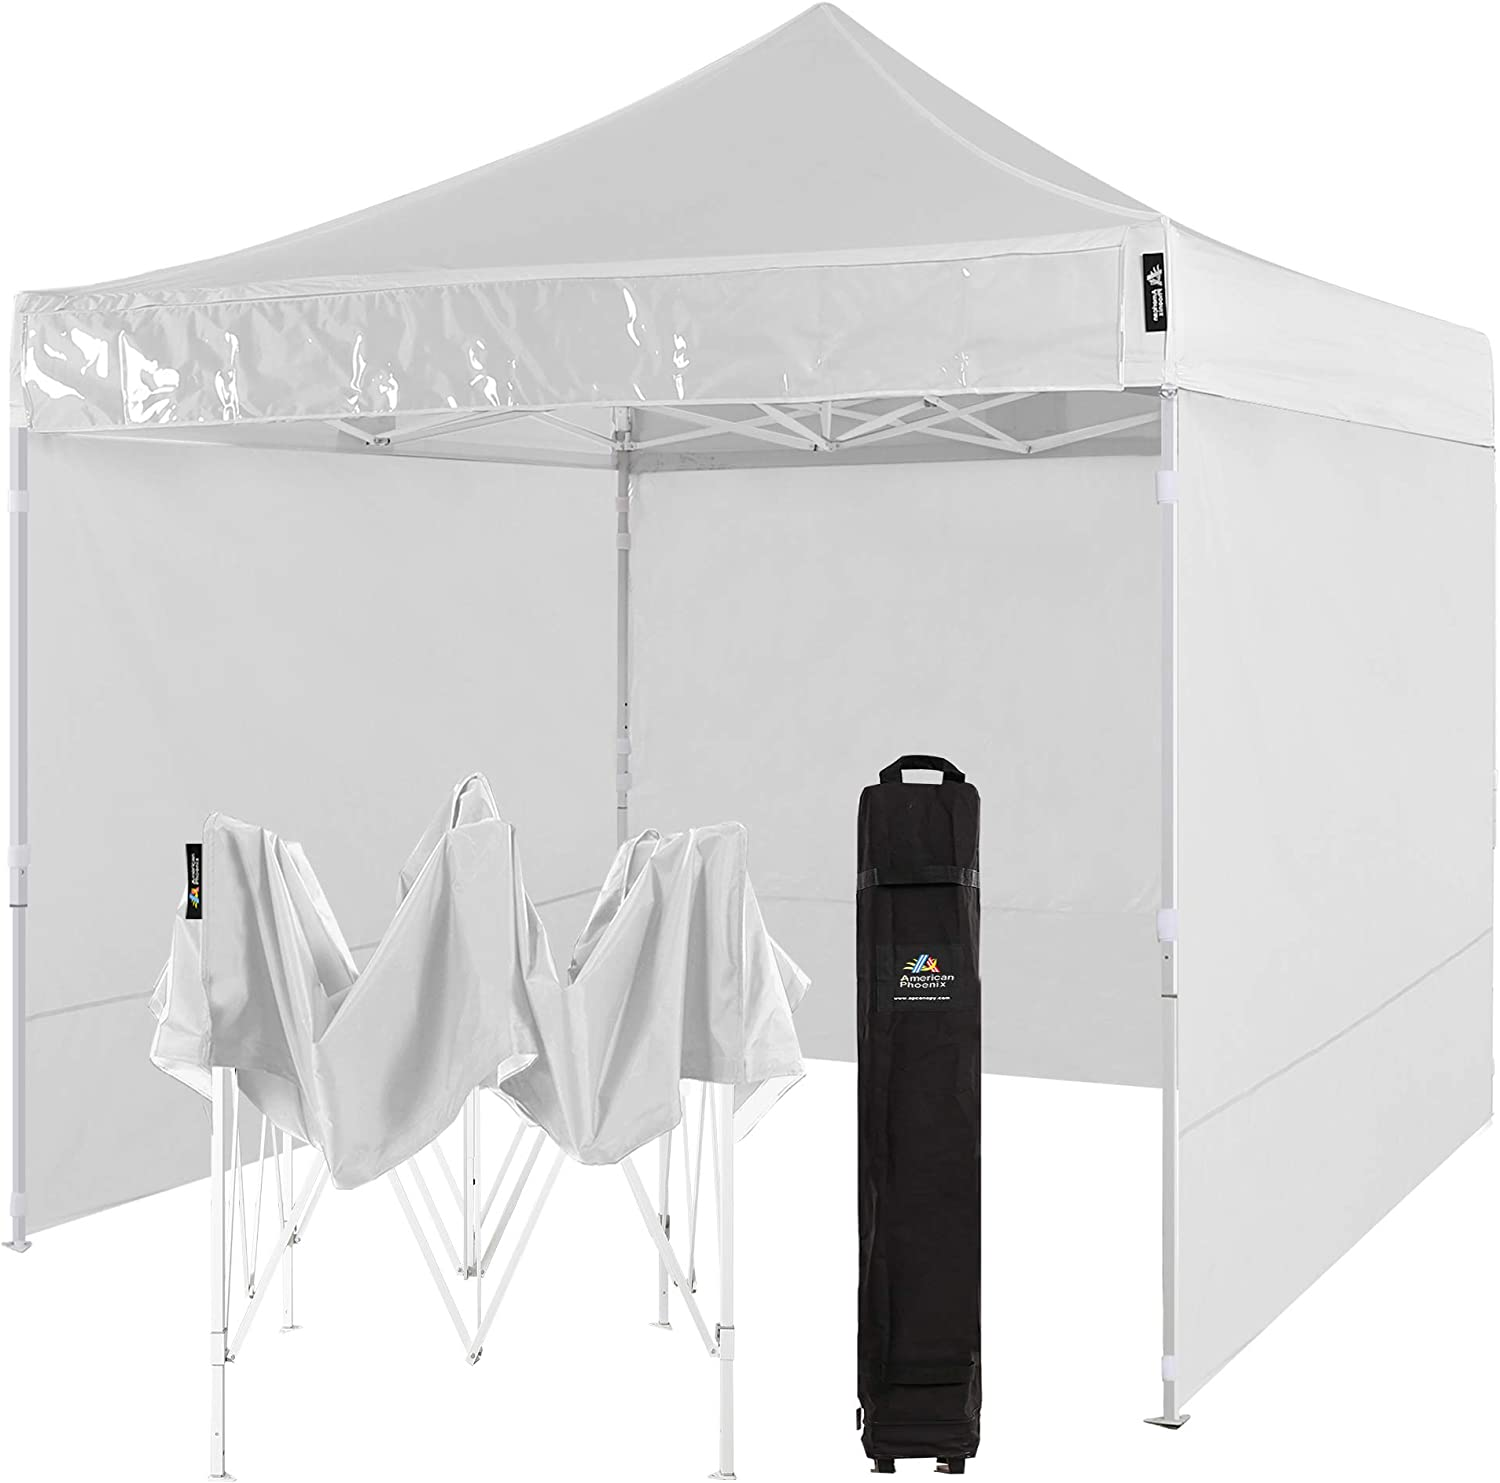 AMERICAN PHOENIX Canopy Tent 10x10 Easy Pop Up Outdoor Canopies Folding Instant Shelter Sunshade with 4 Removable Sidewalls (White)